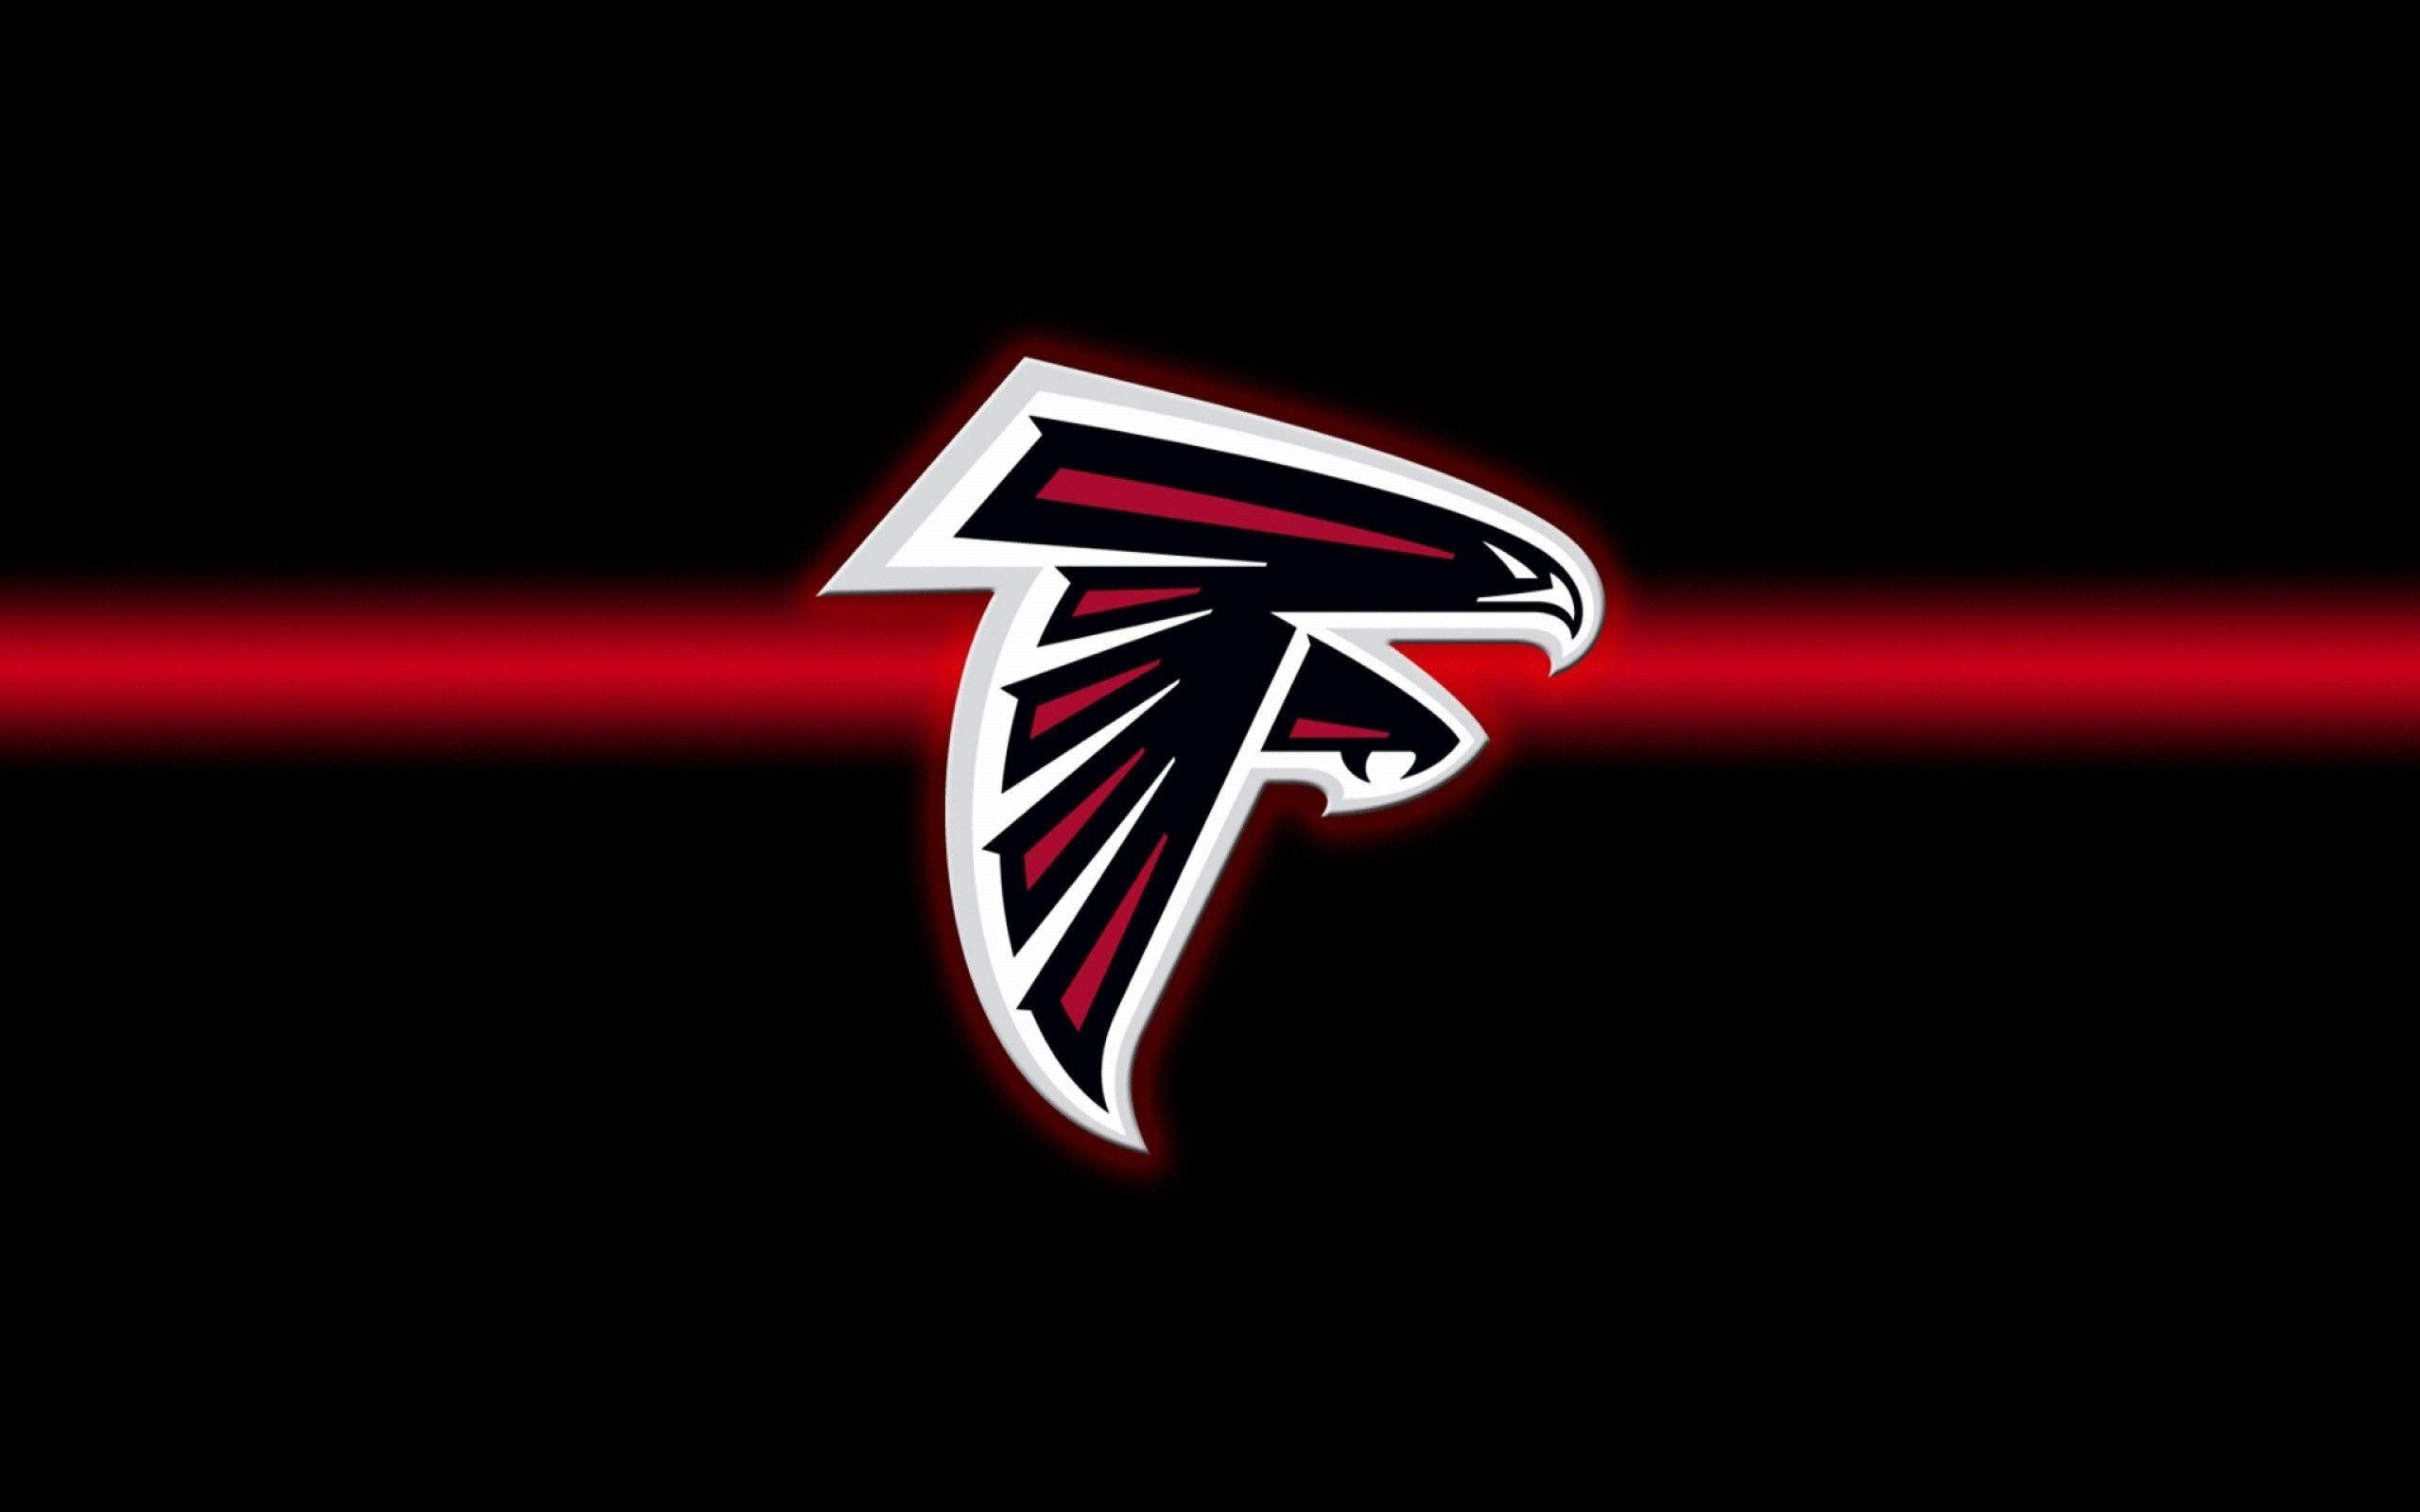 10 Best Atlanta Falcons Wallpaper Hd Full Hd 1080p For Pc Desktop Atlanta Falcons Logo Atlanta Falcons Wallpaper Atlanta Falcons